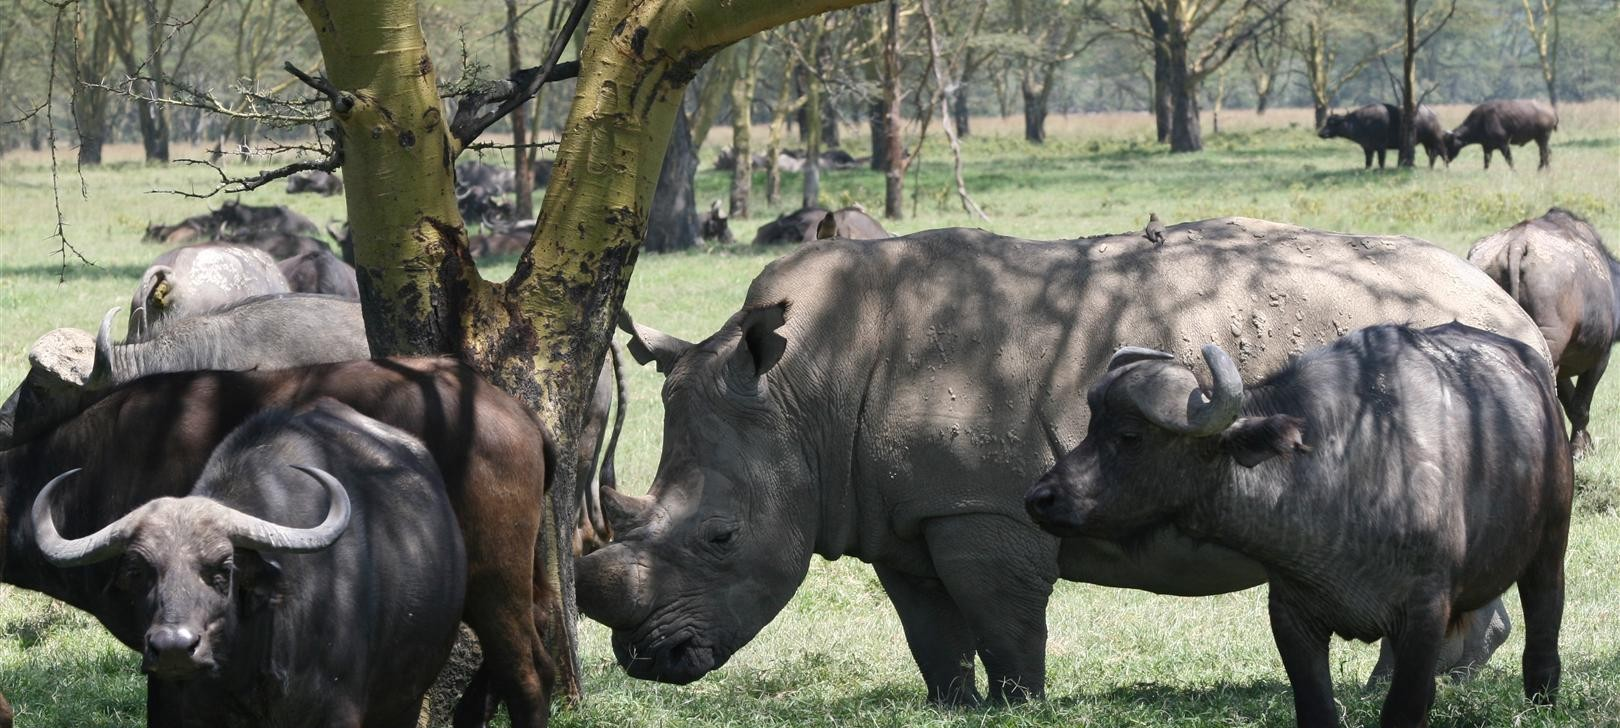 buffalo and rhino sharing shade (photo by Steward Shang)